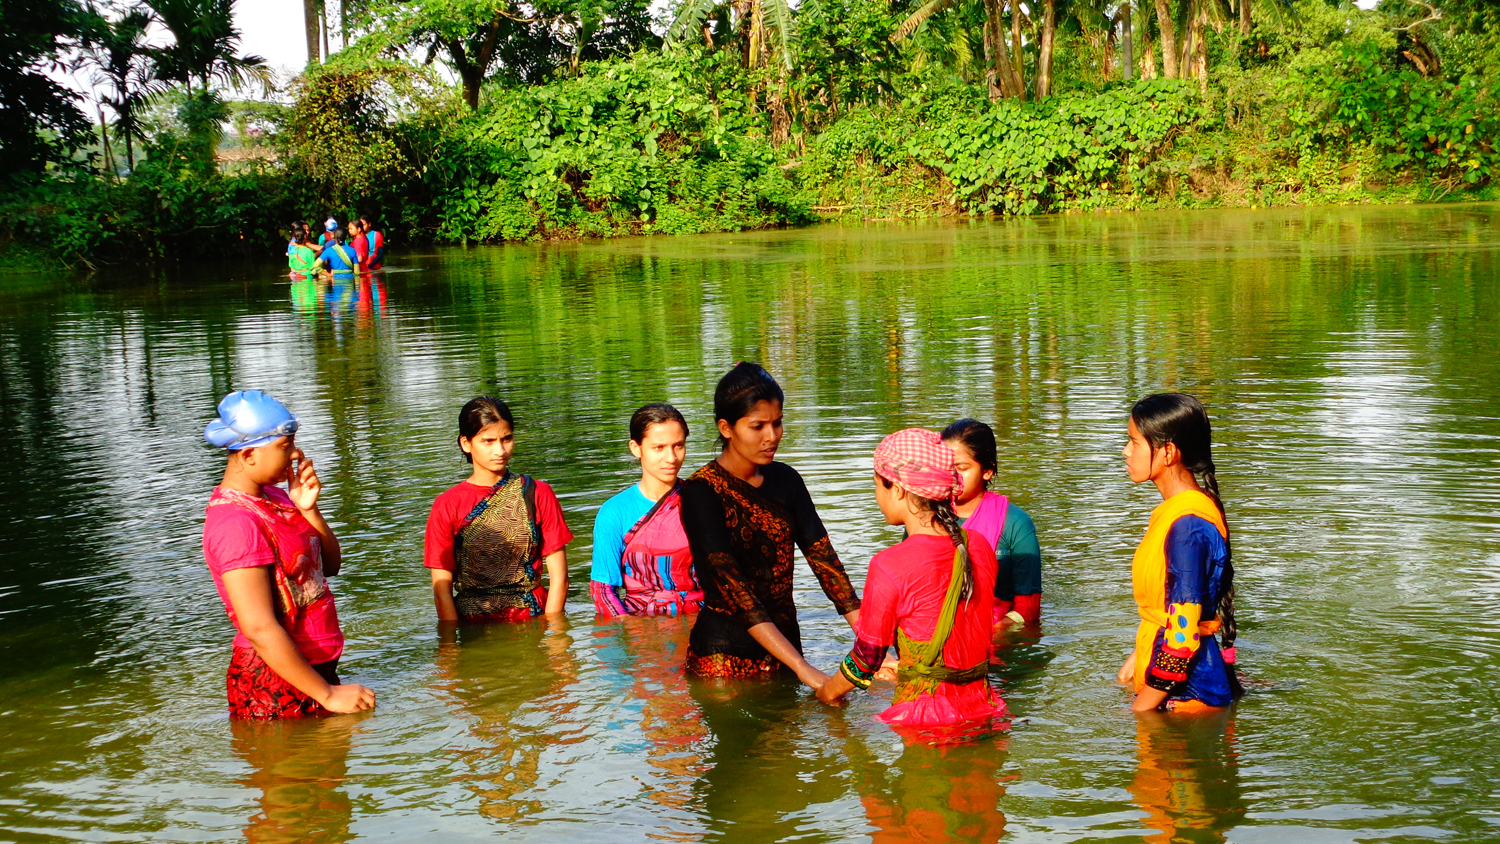 SwimSafe instructor training in a pond in Bangladesh